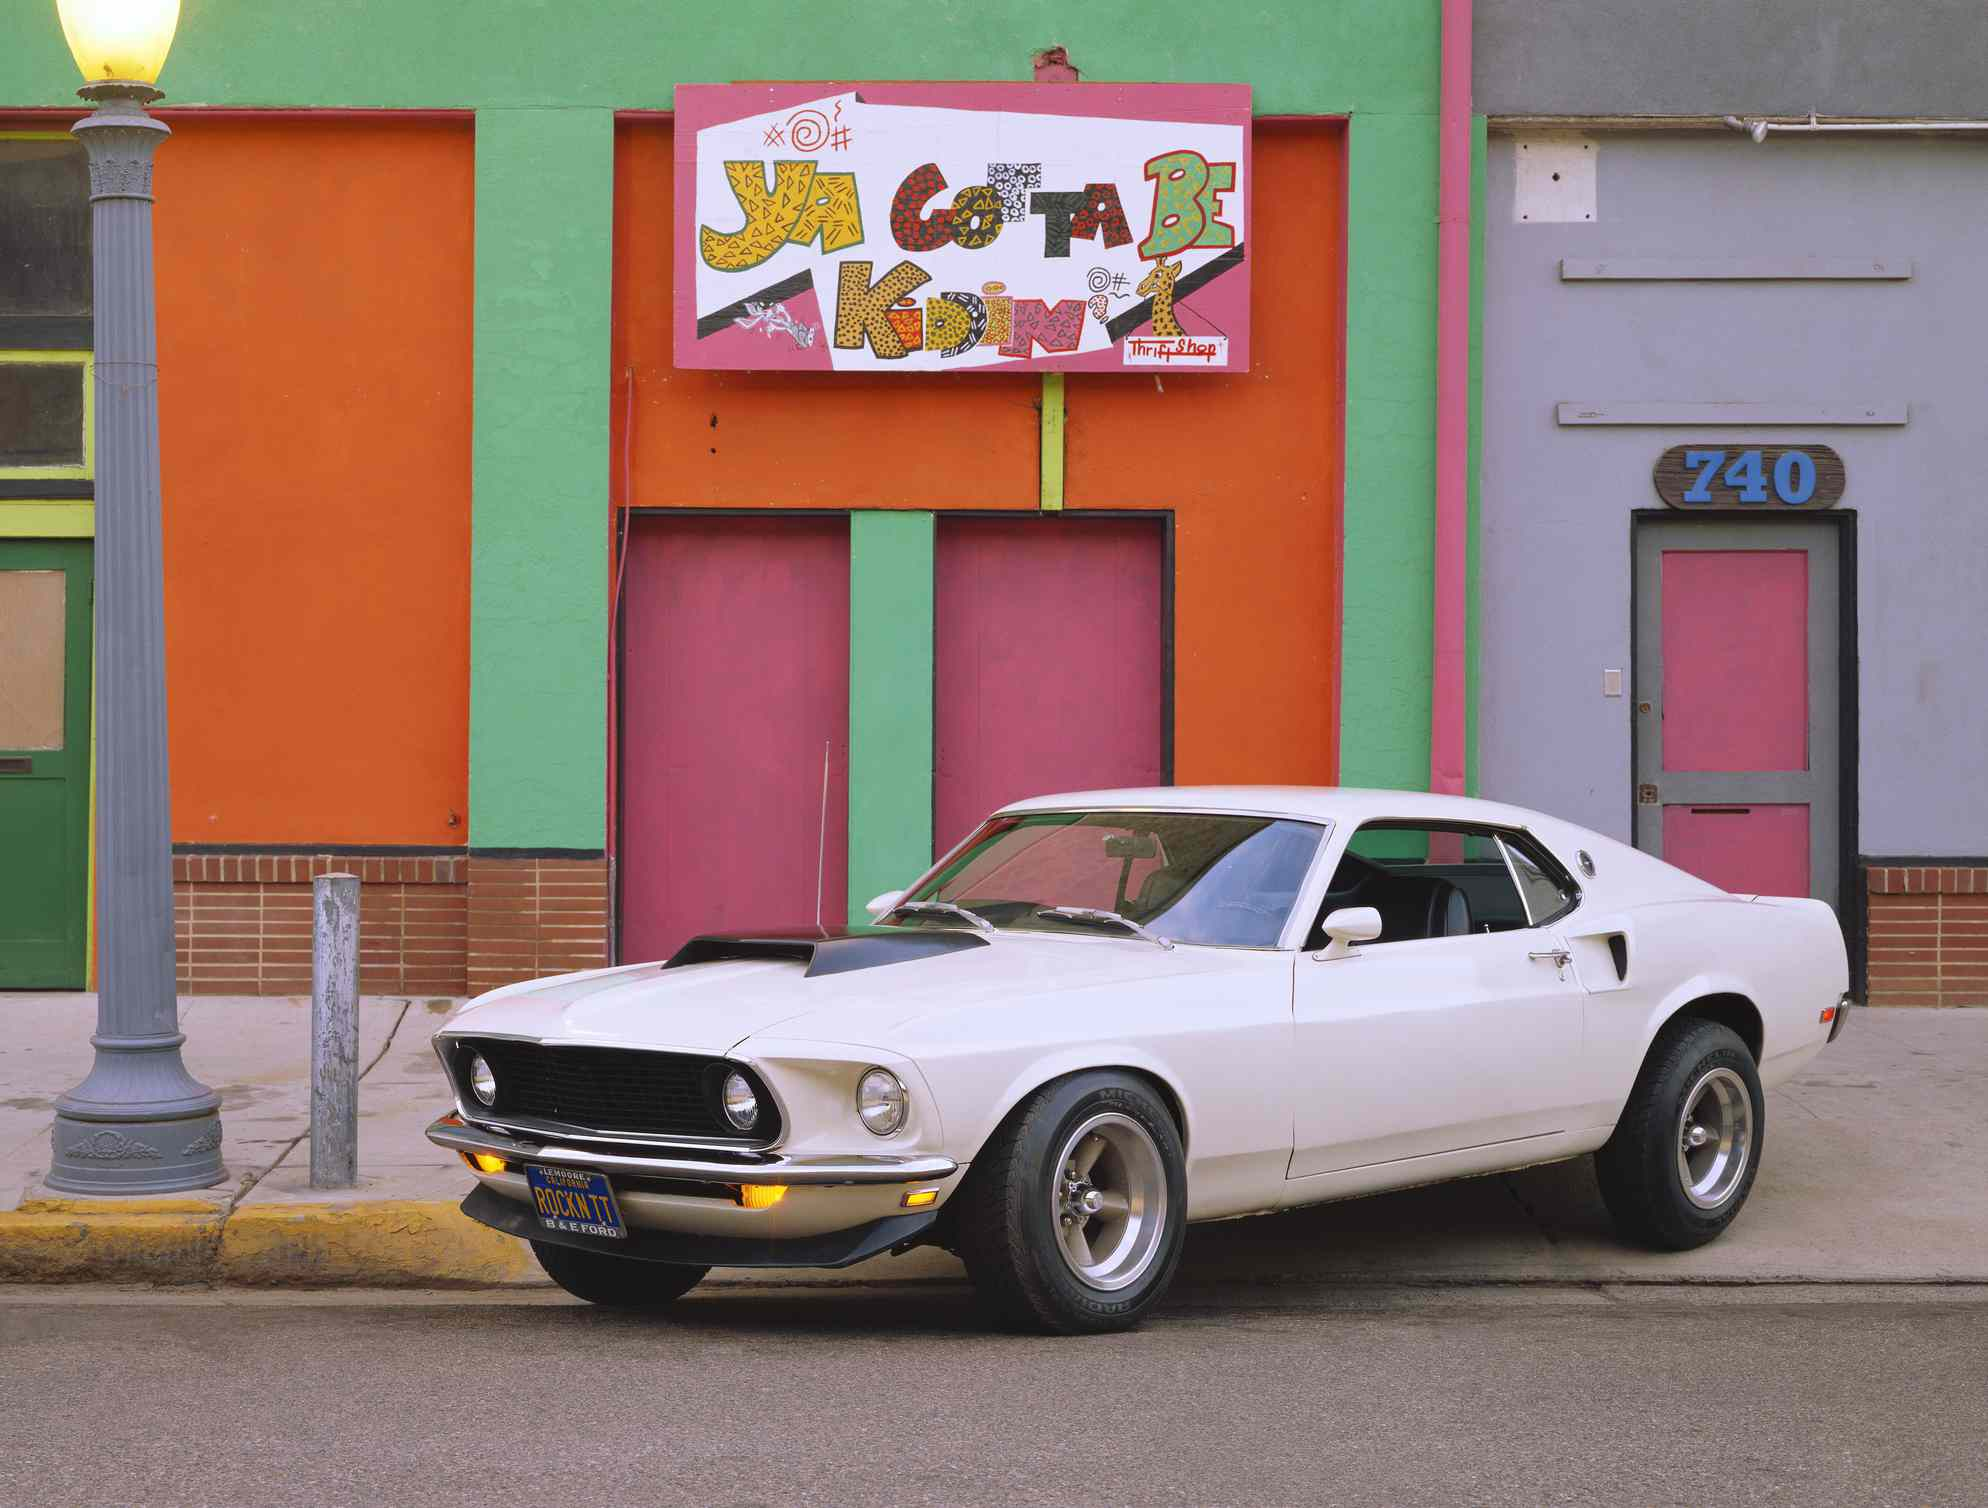 The 10 Best Mustangs Of All Time 1970 Ford Mustang Gt Convertible Boss 429